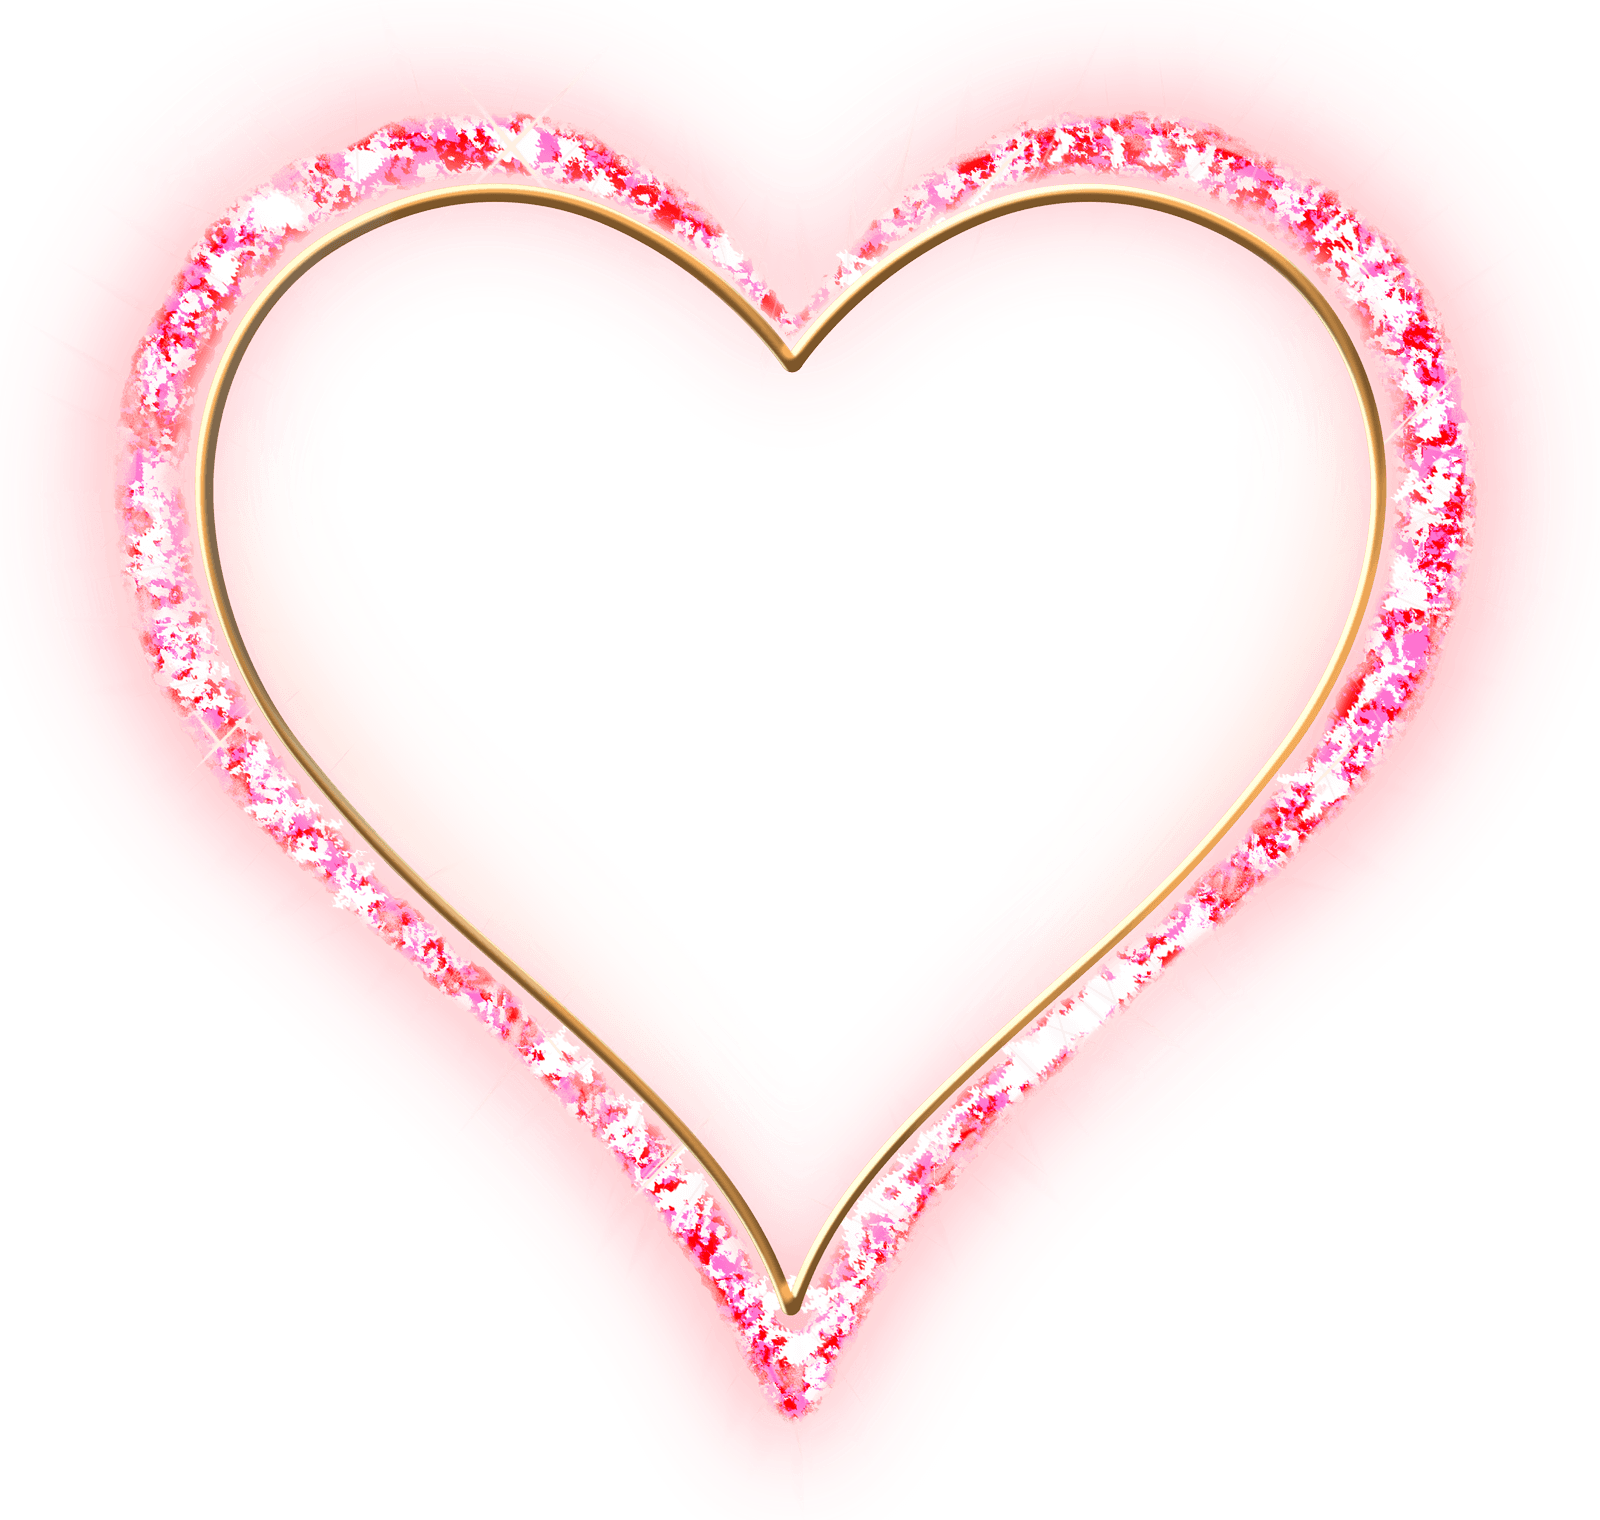 Heart diamond clipart image library stock Pink Diamond Transparent Frame Gold Heart image library stock